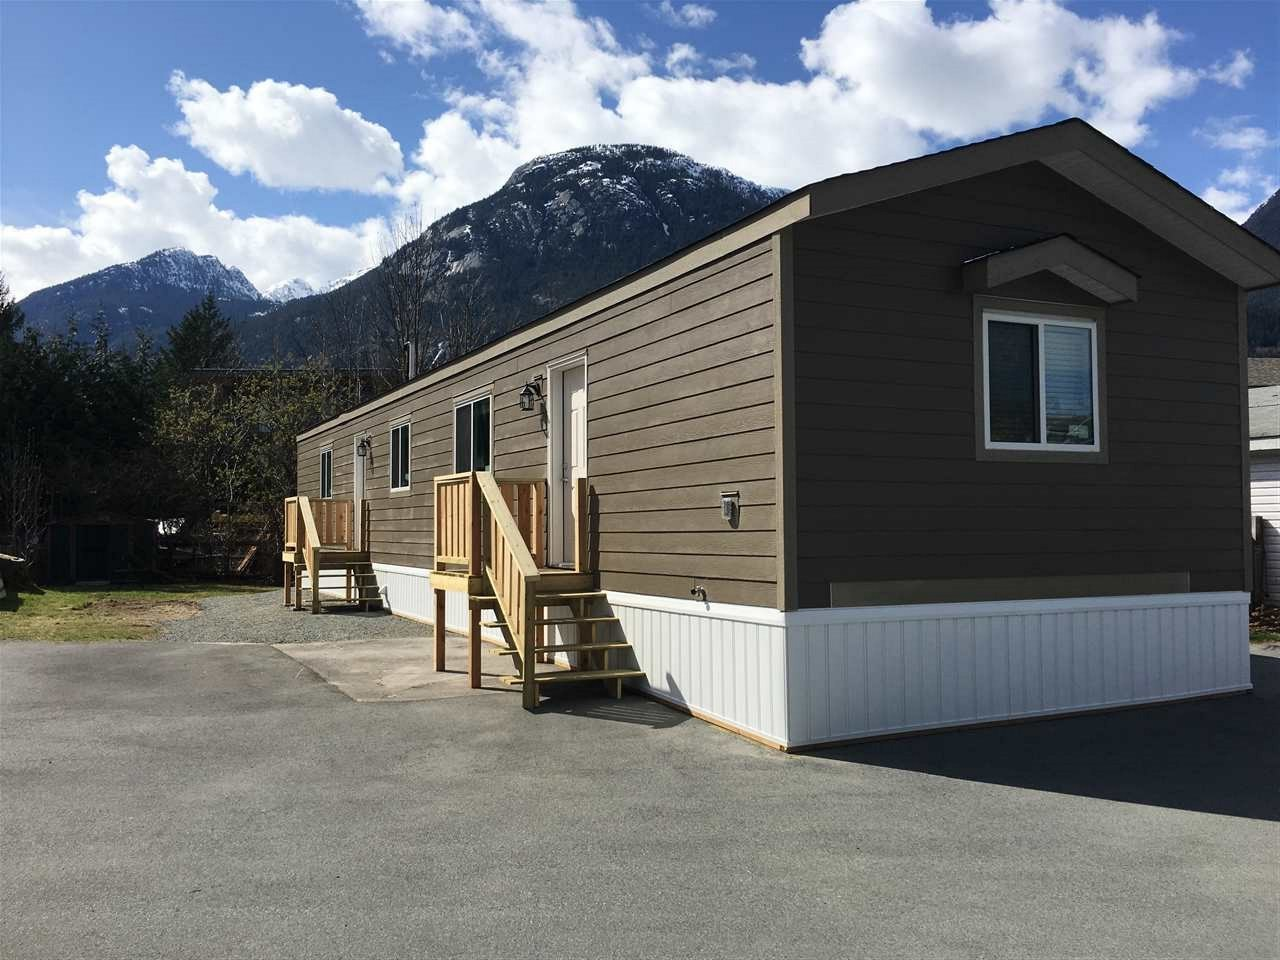 A brand new 16 x 66 2018 Moduline Mobile Home on an extra large lot with a mountain view in arguably the best park in Squamish. Full 100 amp service with natural gas, the lowest pad rents and best snow removal are but a few of the deluxe benefits awaiting you. This home has been upgraded to ensure you have luxury living at an entry level price. Vaulted ceilings, upgraded doors, trim, windows, drywall interior, hardi-board exterior, a pantry, a laundry room, a well thought through open floor plan with a large kitchen, large bedrooms, an additional full four piece ensuite and large walk in closet! A perfect start to expand your ideas! Add a wrap around deck, a garage, a foyer style porch, a third bedroom...you have the room and options. A  delight to show! This one will not last long.